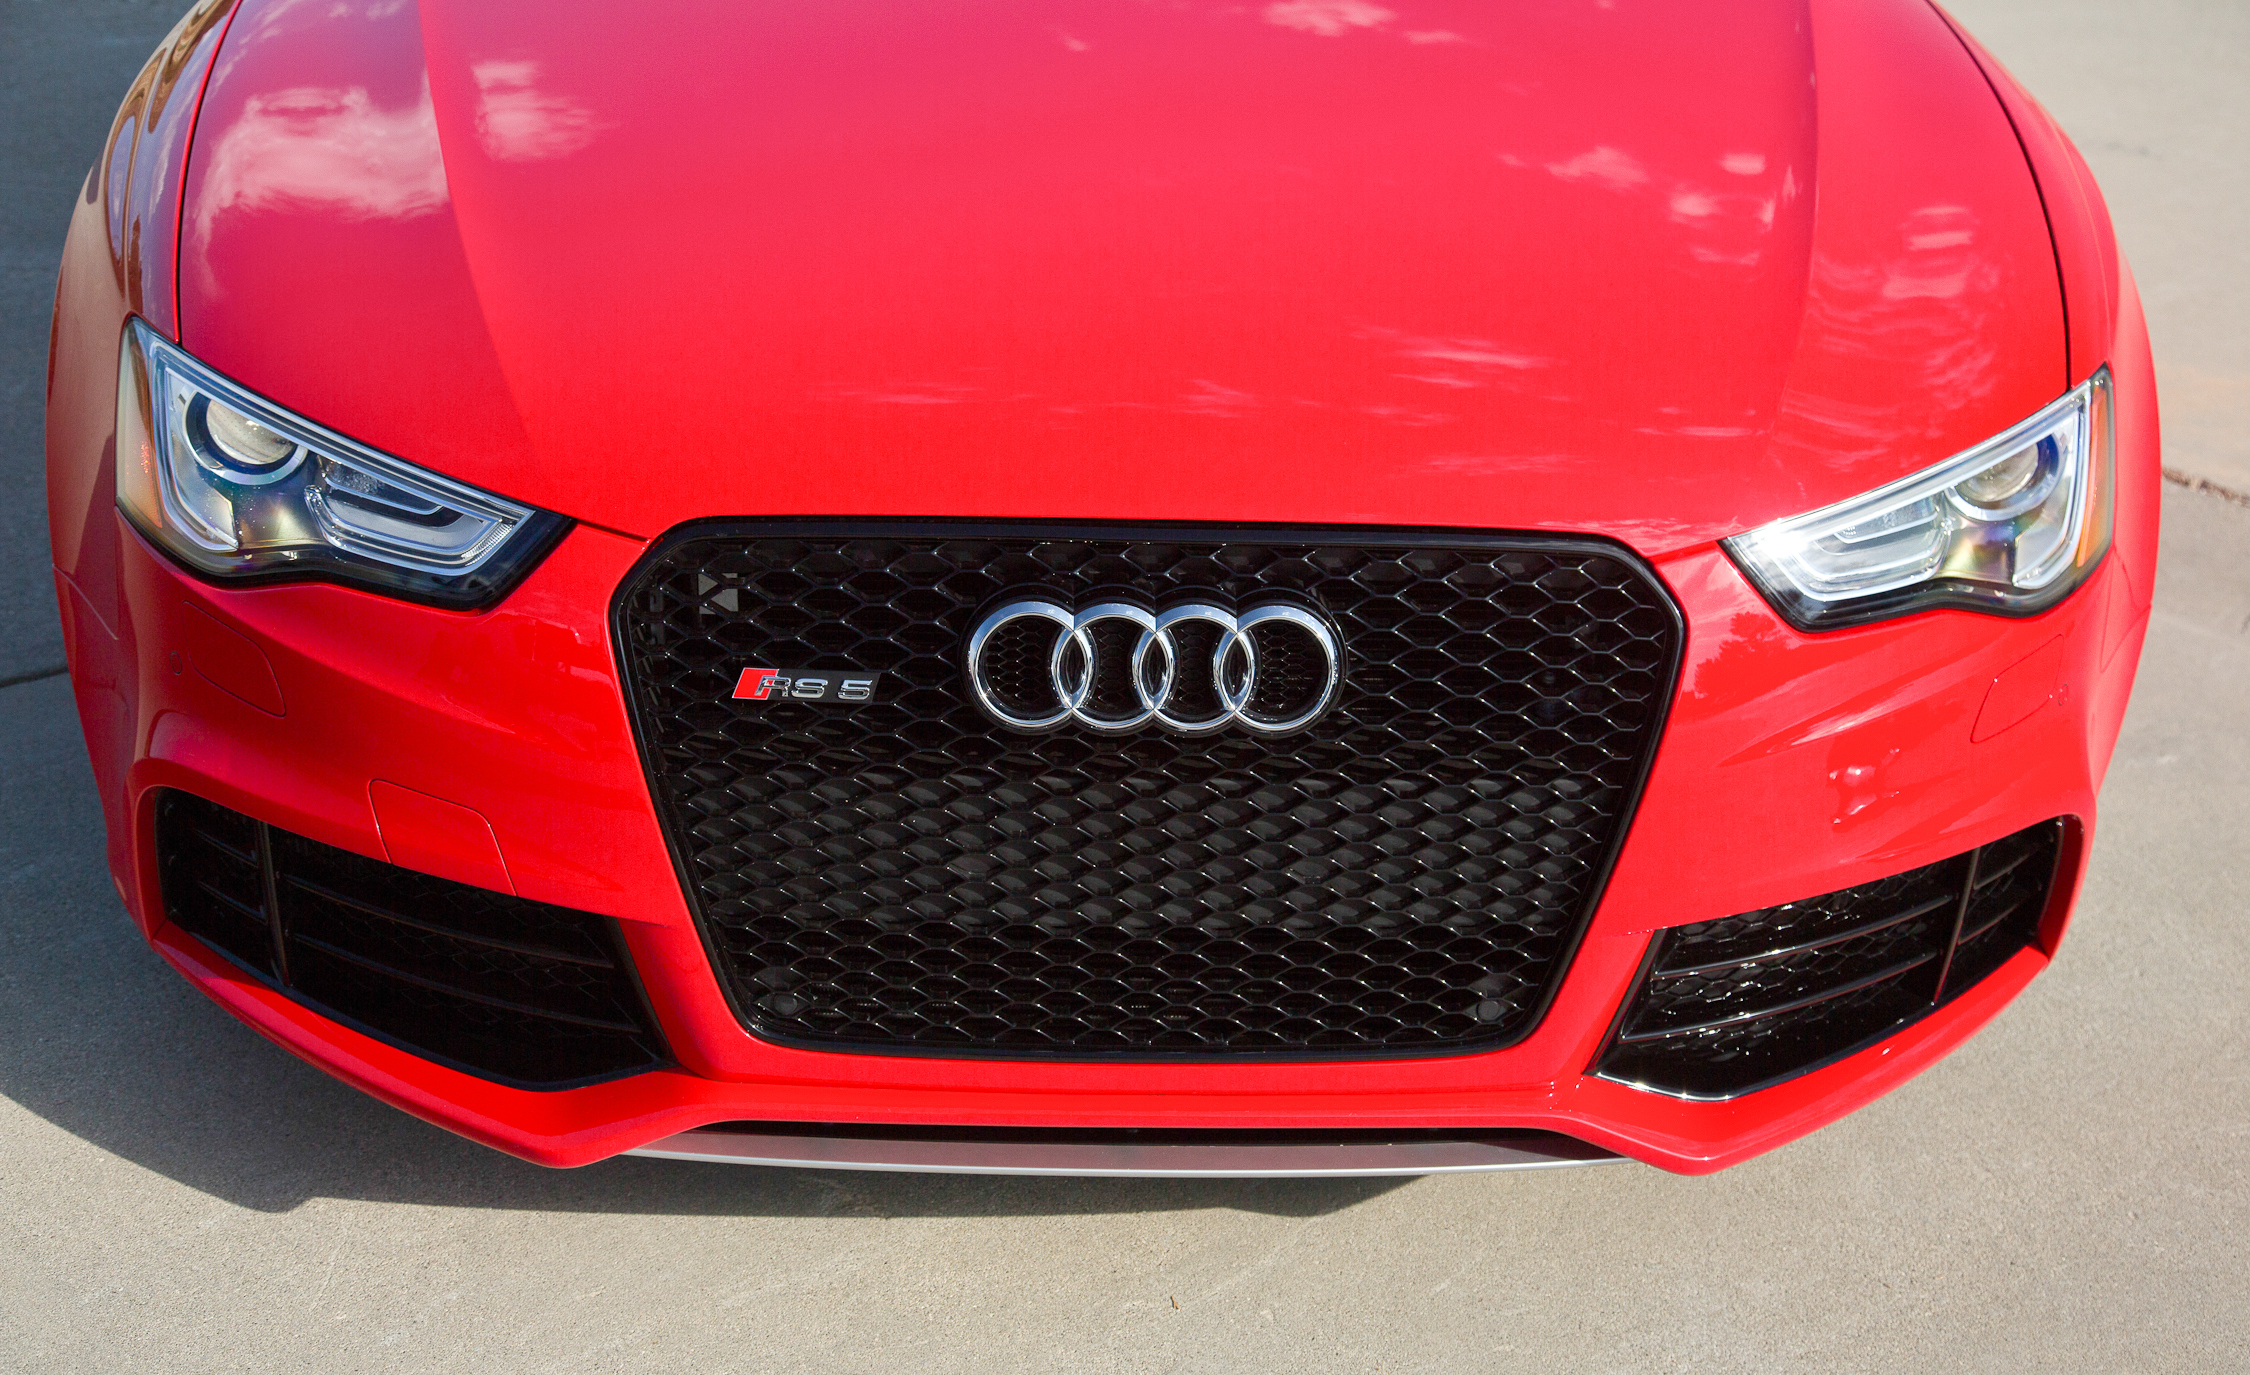 2013 Audi RS 5 Exterior View Grille And Front Bumper (Photo 11 of 41)